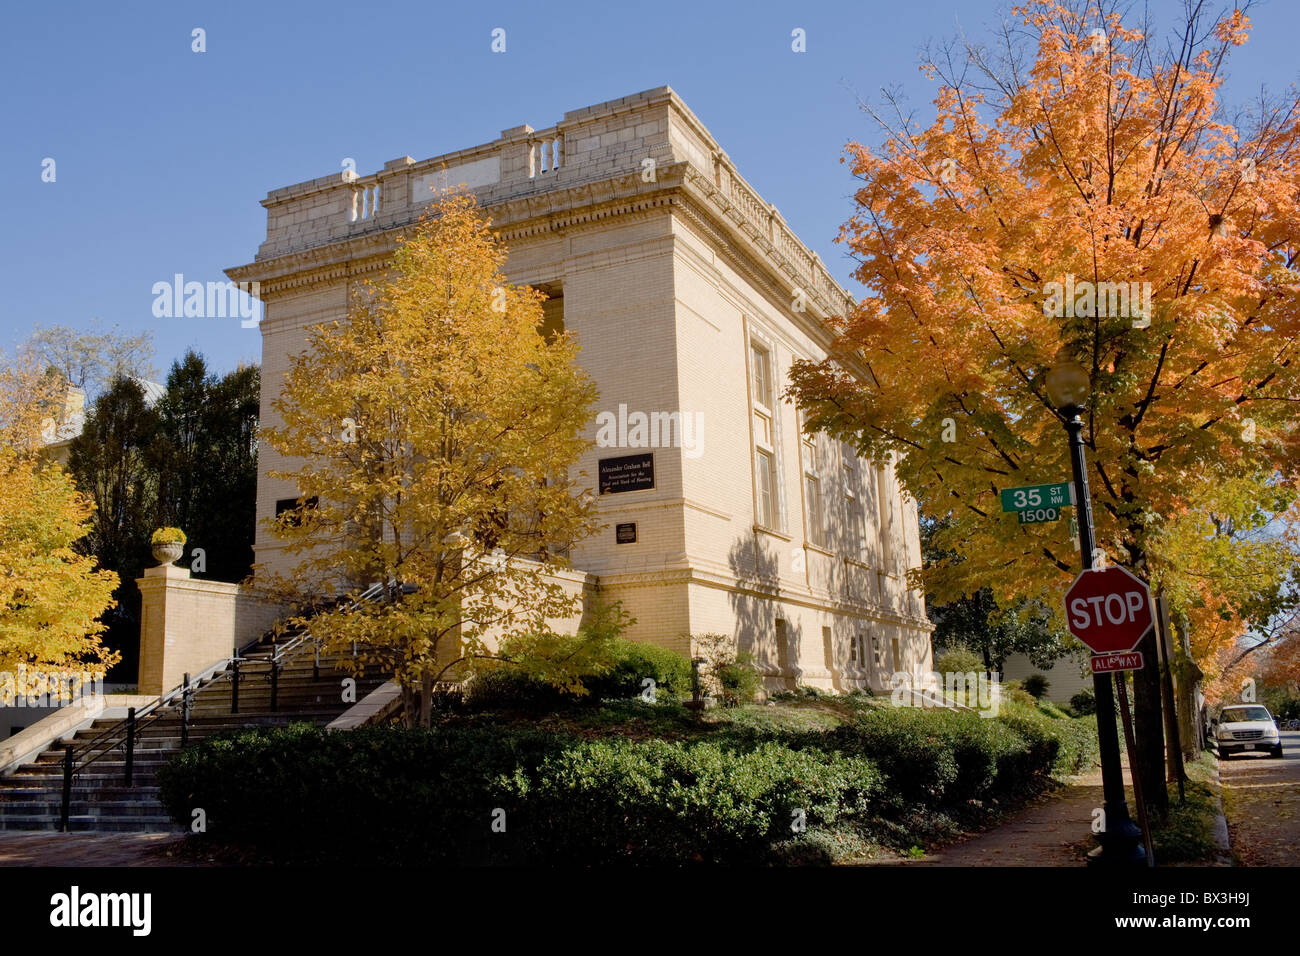 Volta Bureau and Laboratory by Alexander Graham Bell, Georgetown, Washington D.C. - Stock Image